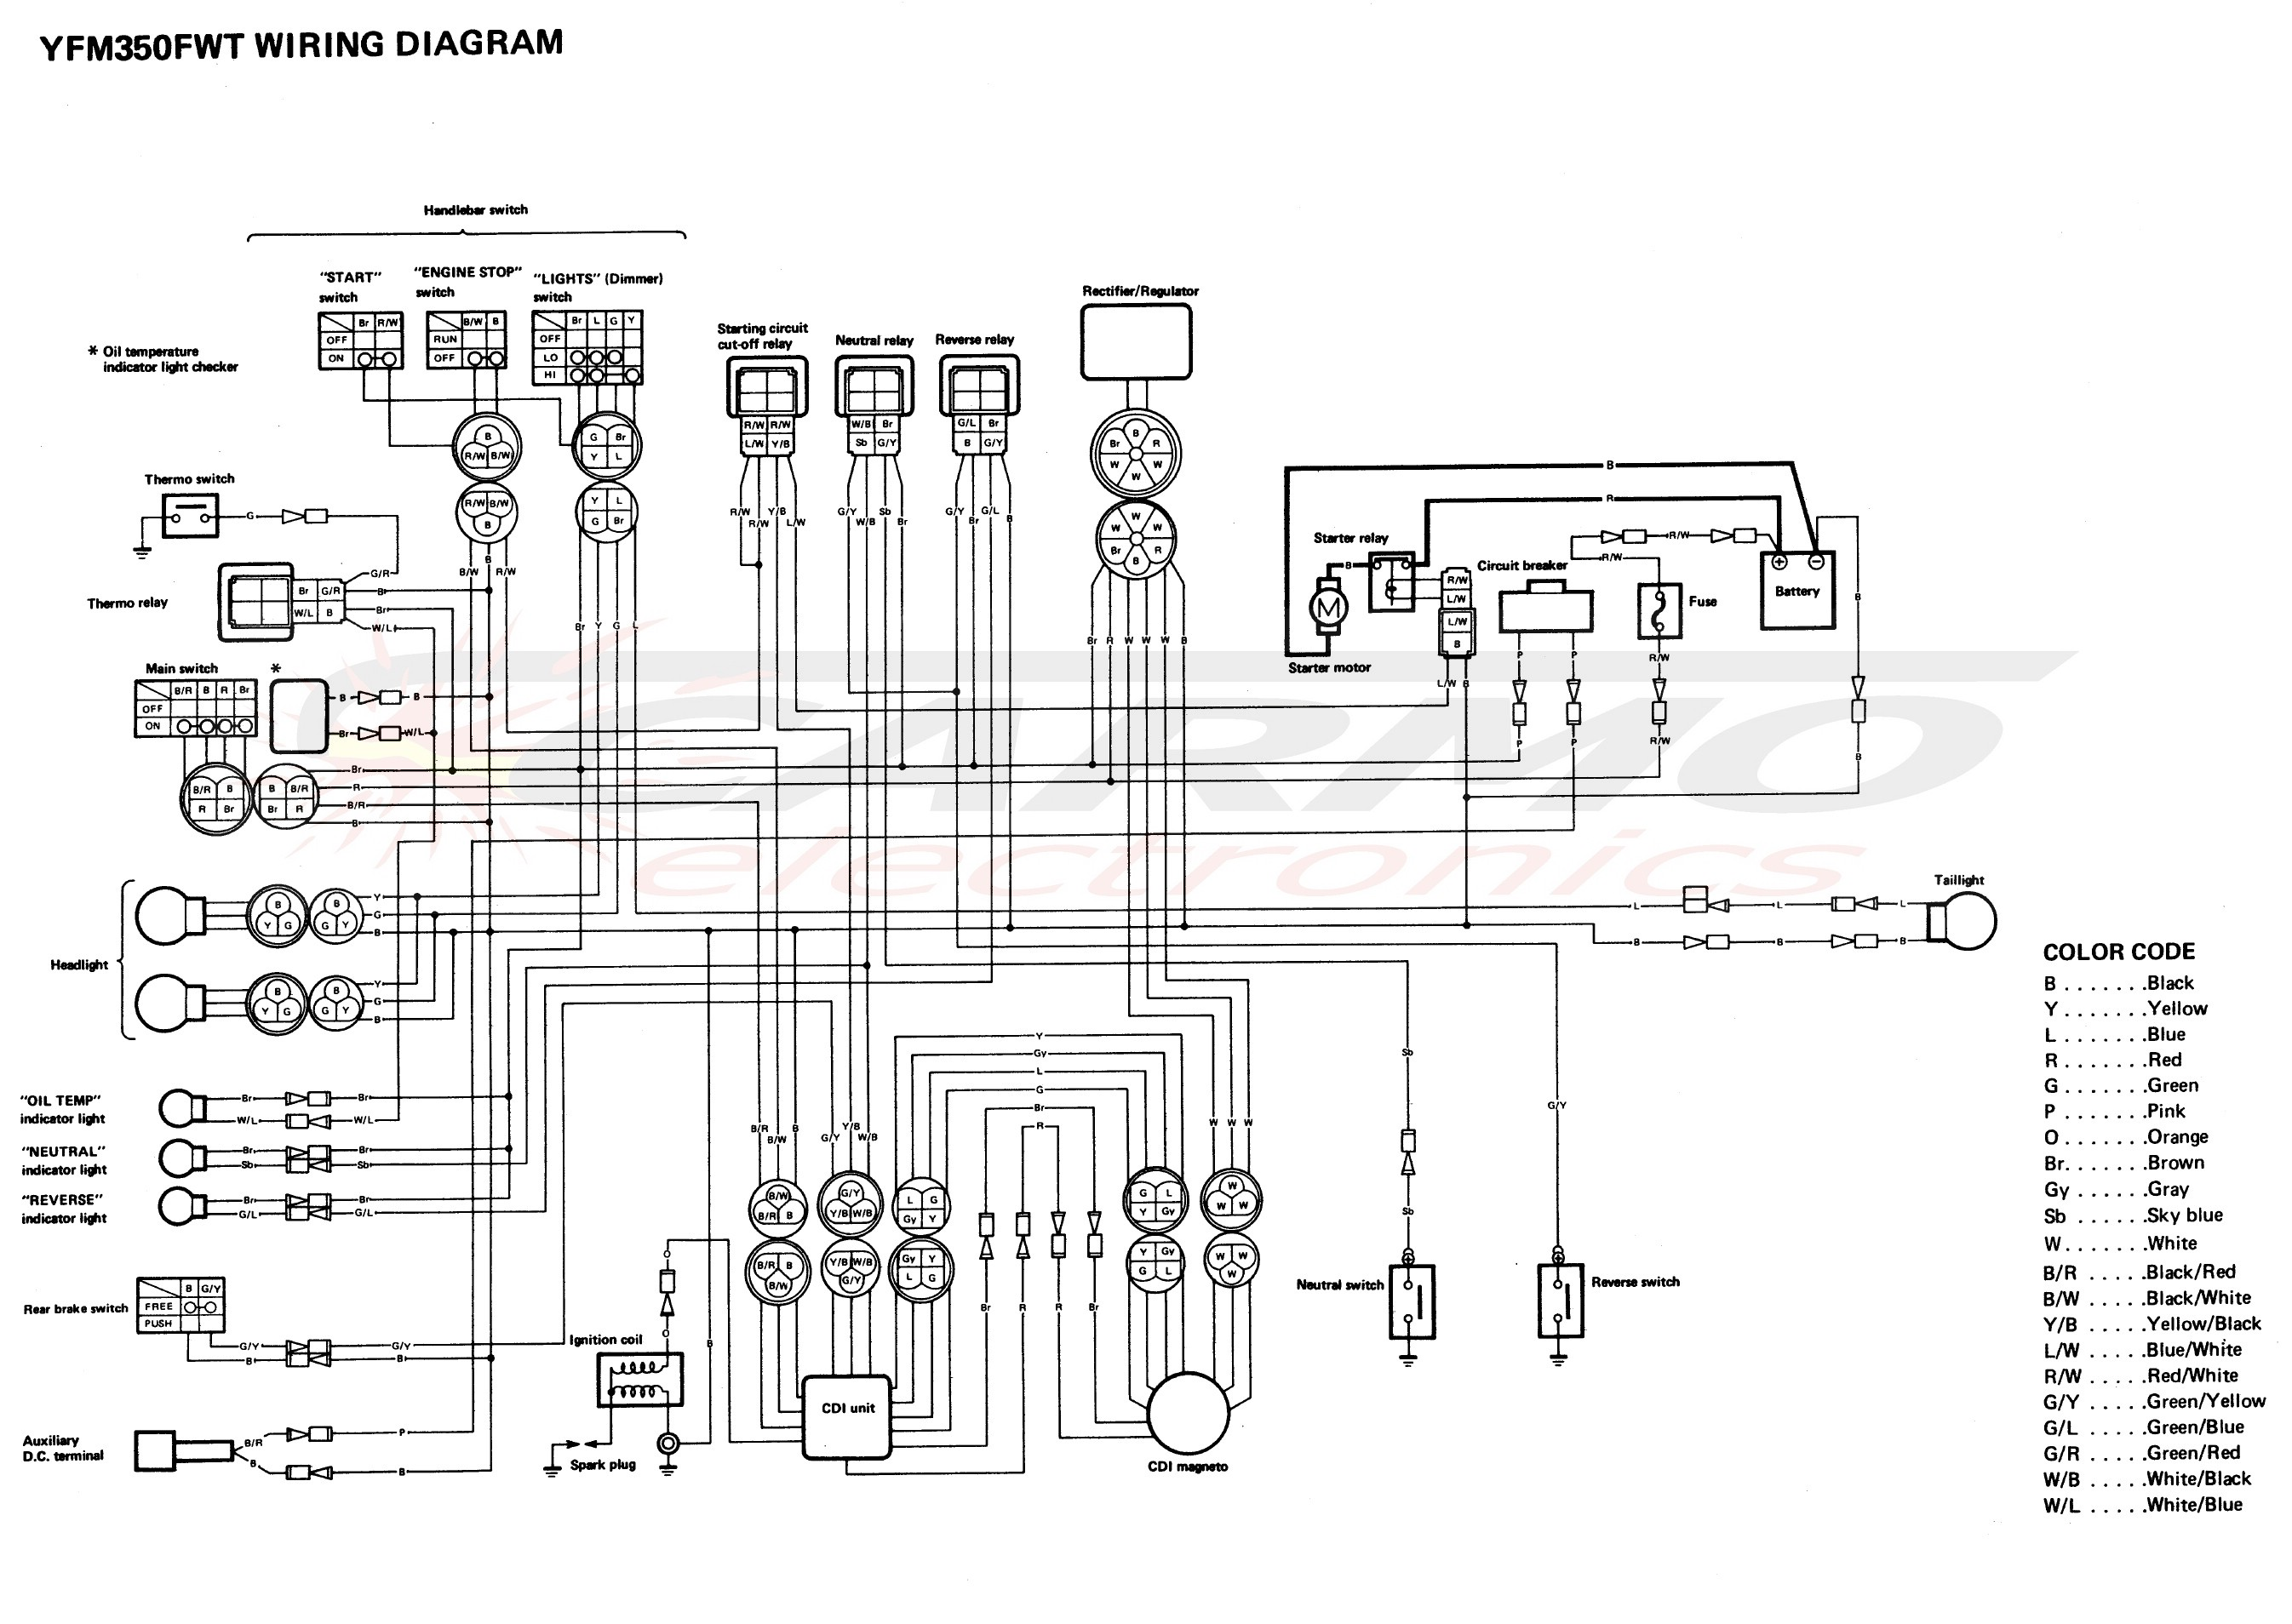 yamaha warrior wiring diagram 72 ford f250 honda 300 fourtrax ignition get free image